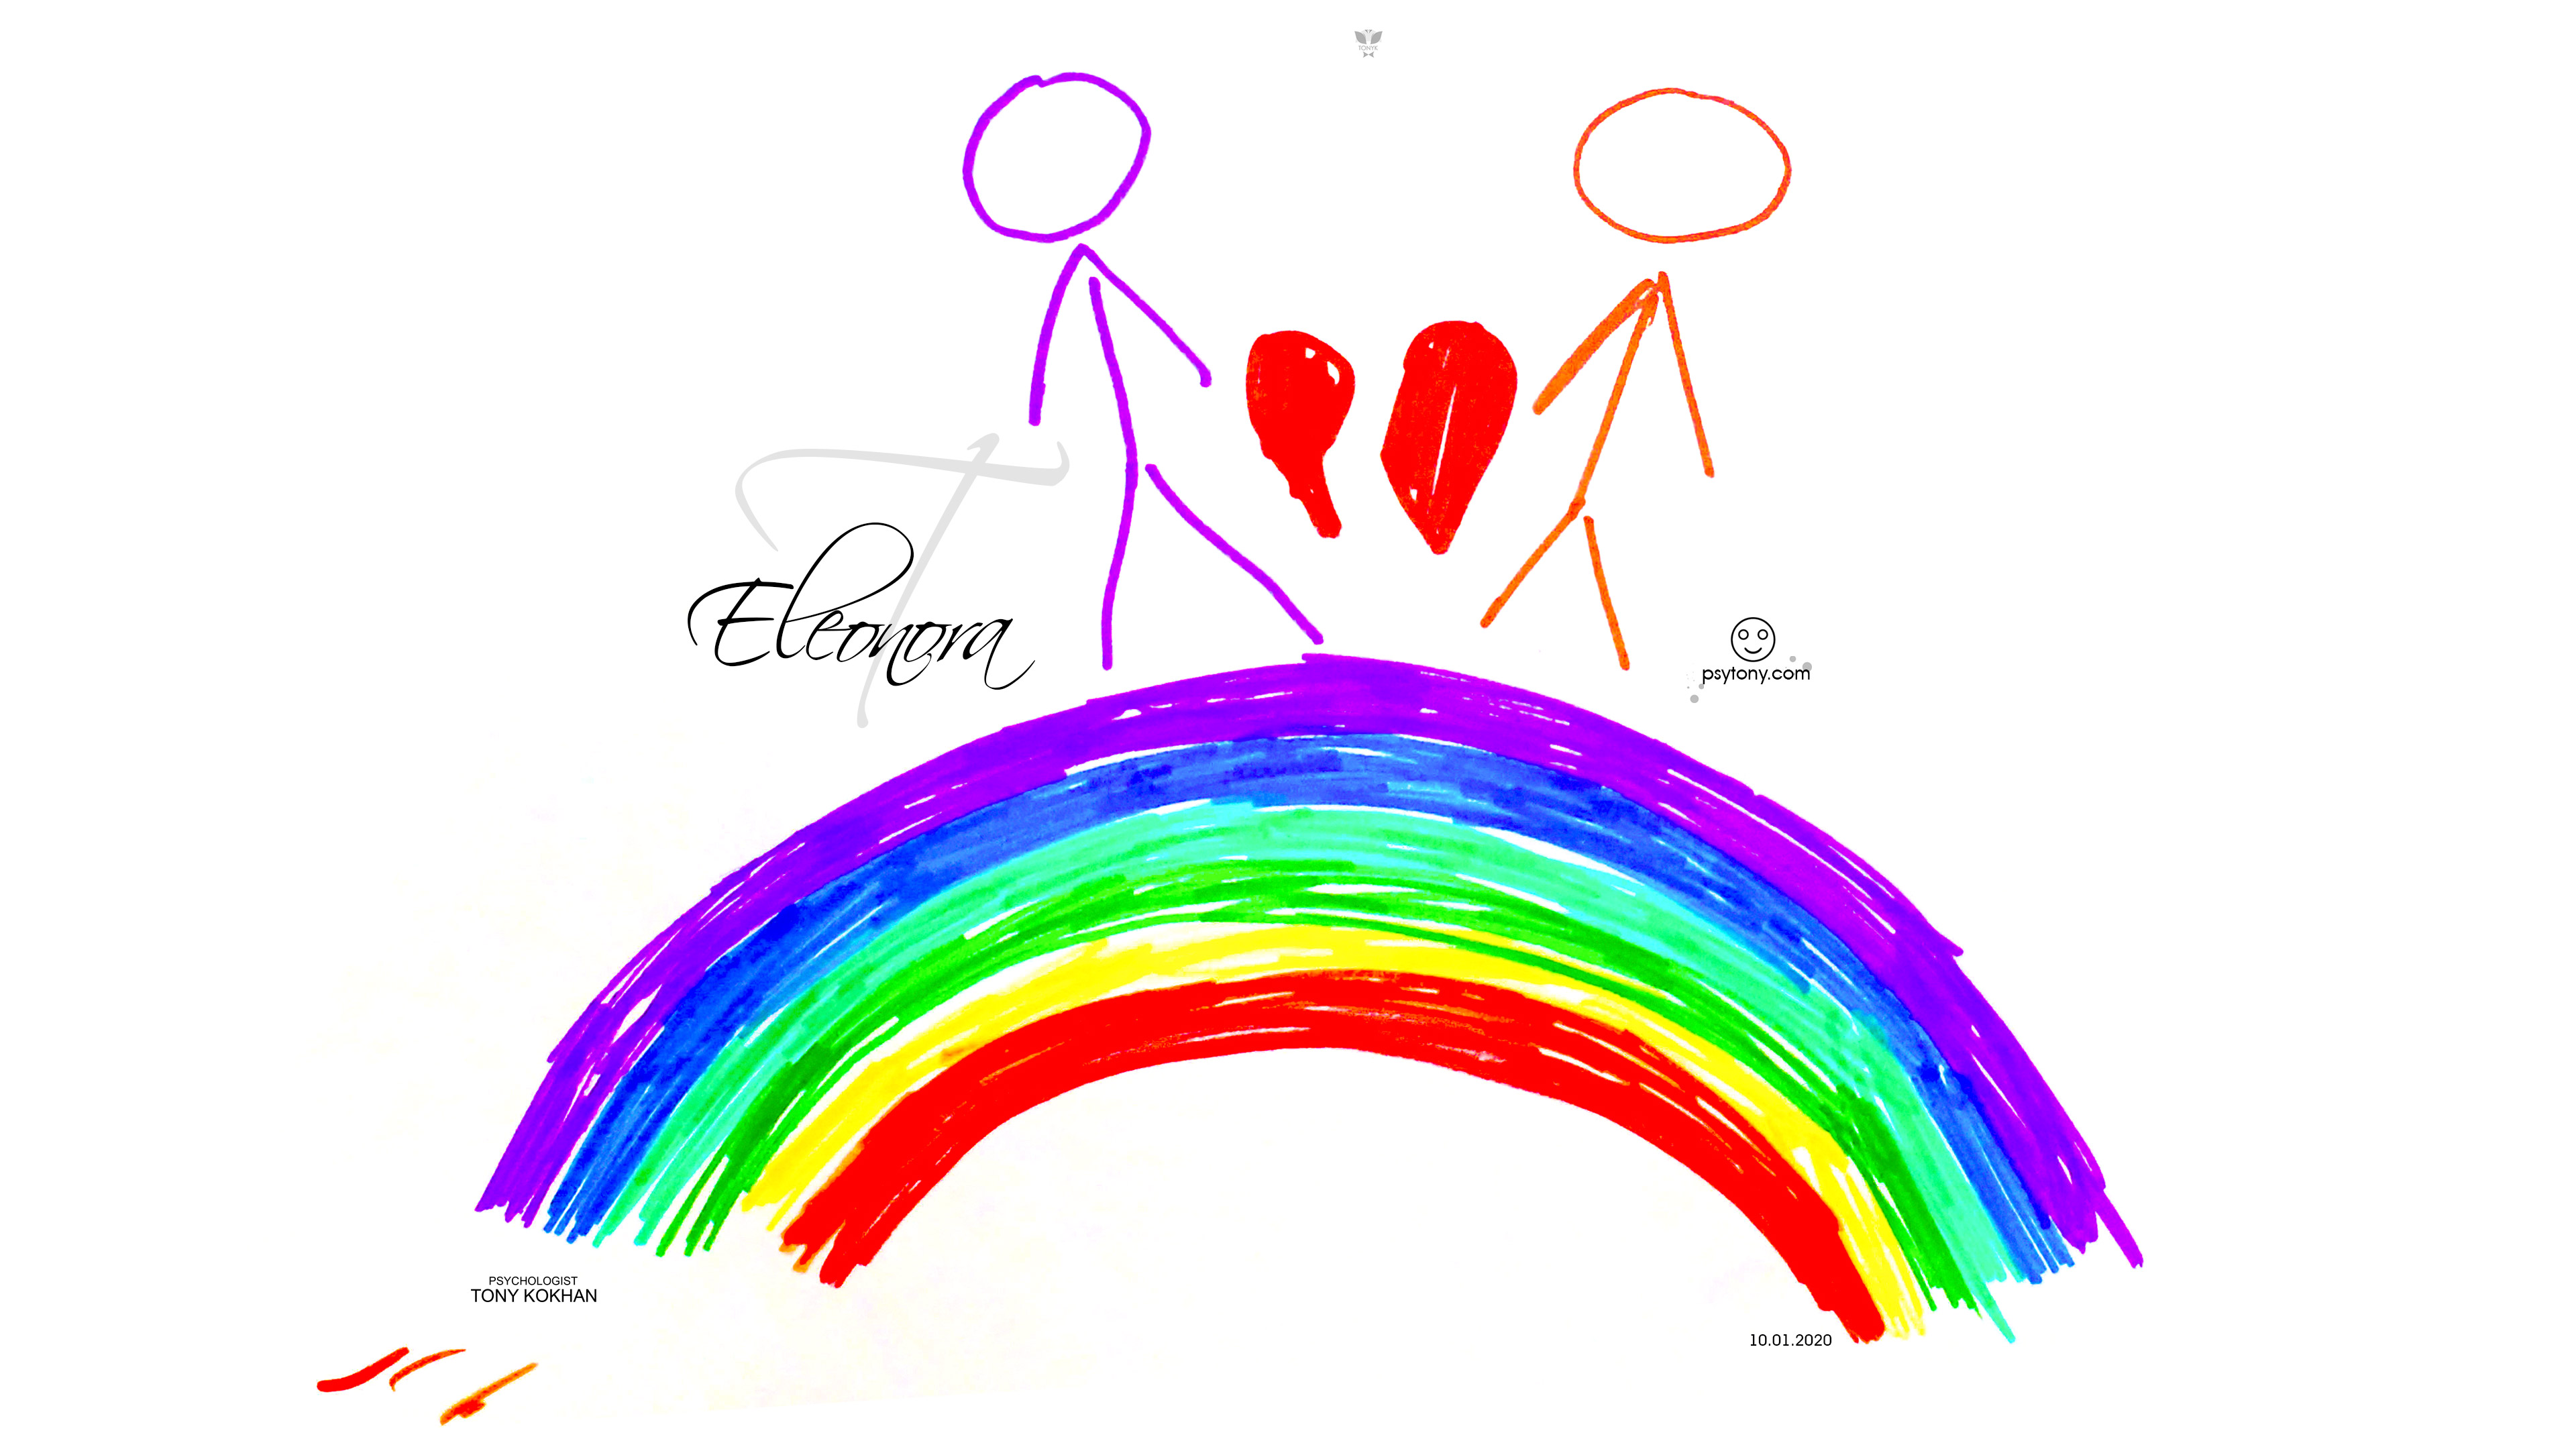 Eleonora-Soul-Girl-Boy-People-Empty-Faces-Love-Broken-Heart-Two-Halves-Rainbow-Picture-Markers-2020-Multicolors-4K-Wallpapers-by-Psychologist-Tony-Kokhan-www.psytony.com-image